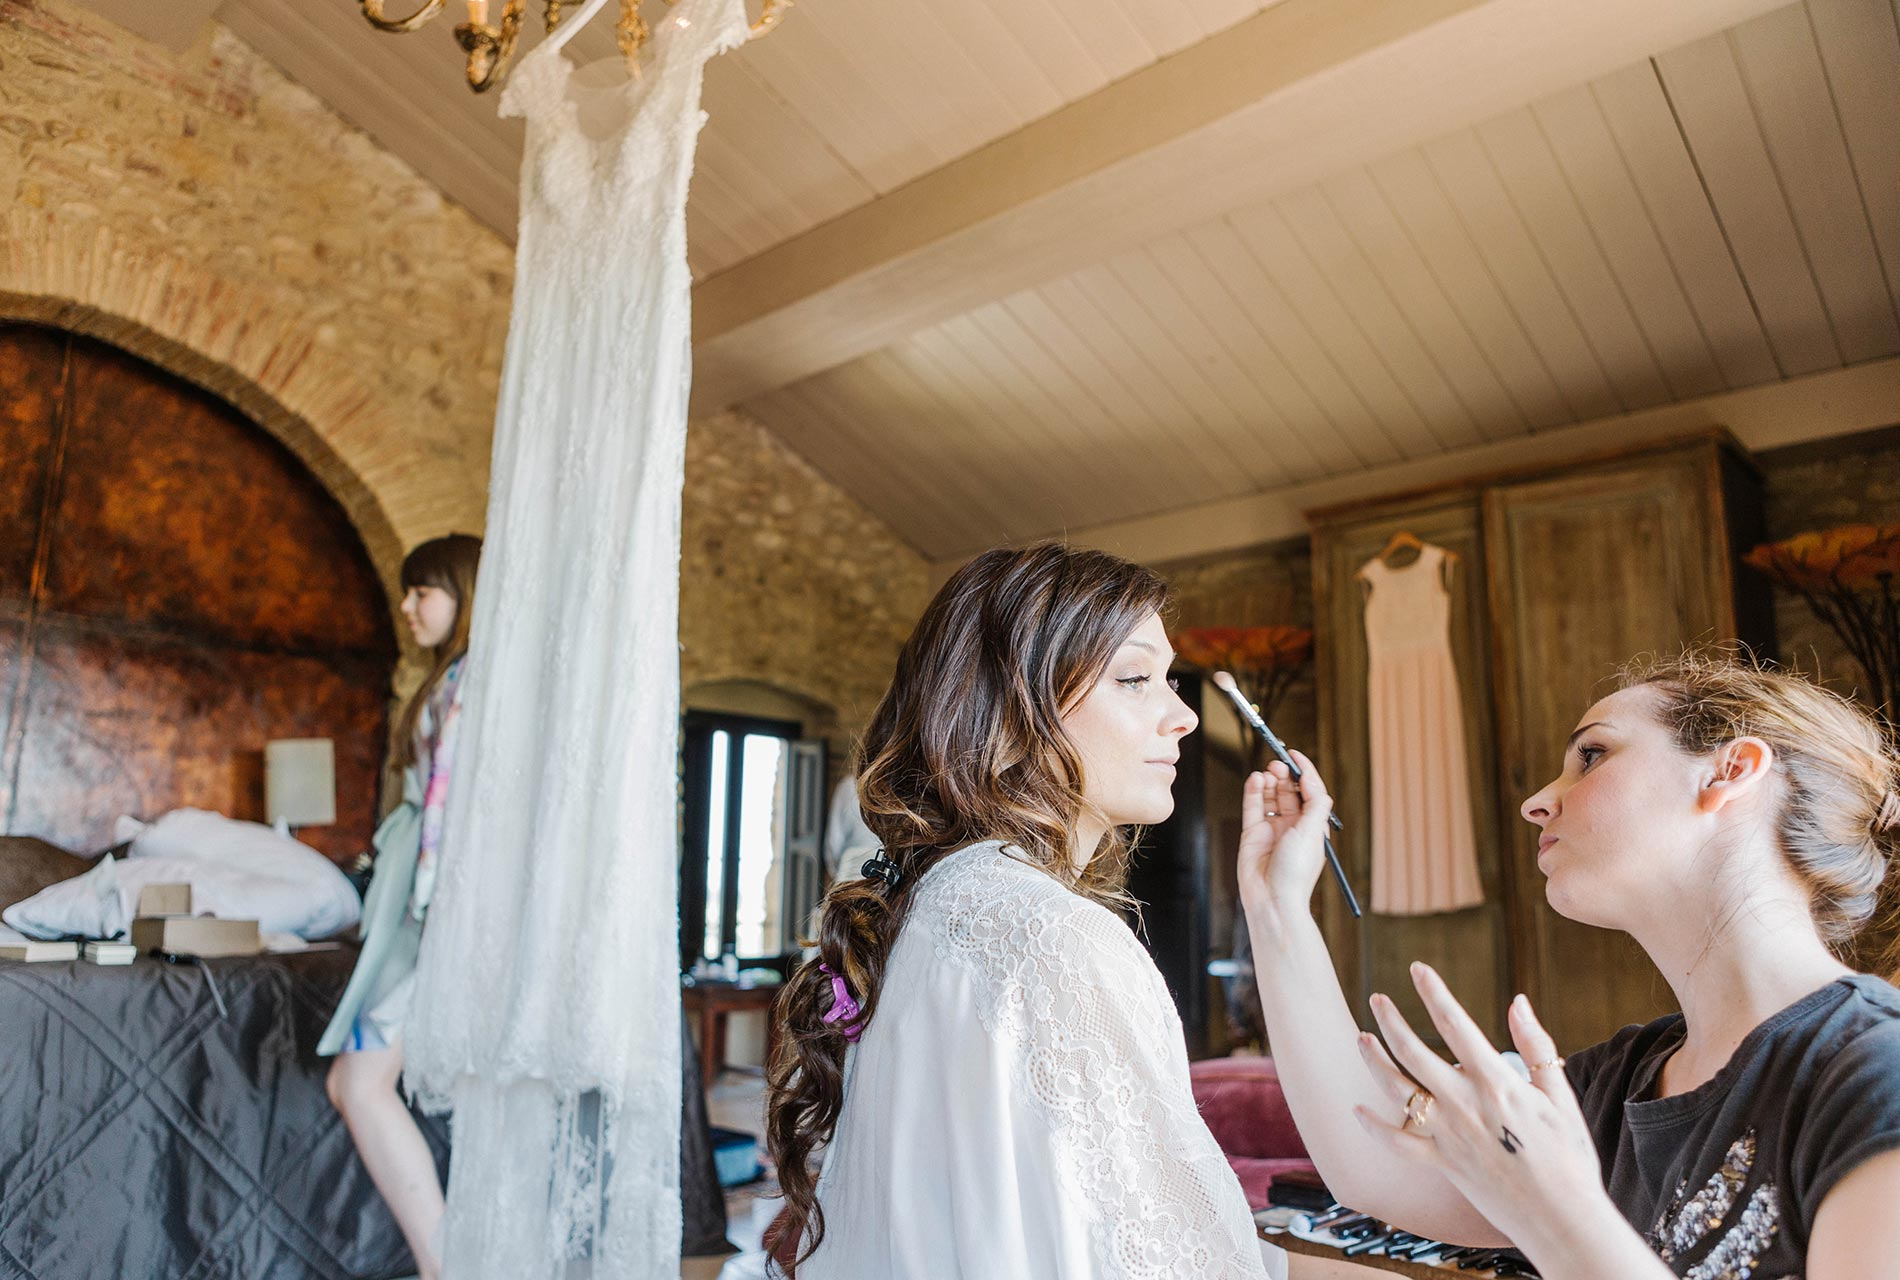 Wedding make up. Bride's details. Wedding decarations. Castell de Emporda wedding photogaphy. Destination wedding photographer Spain.